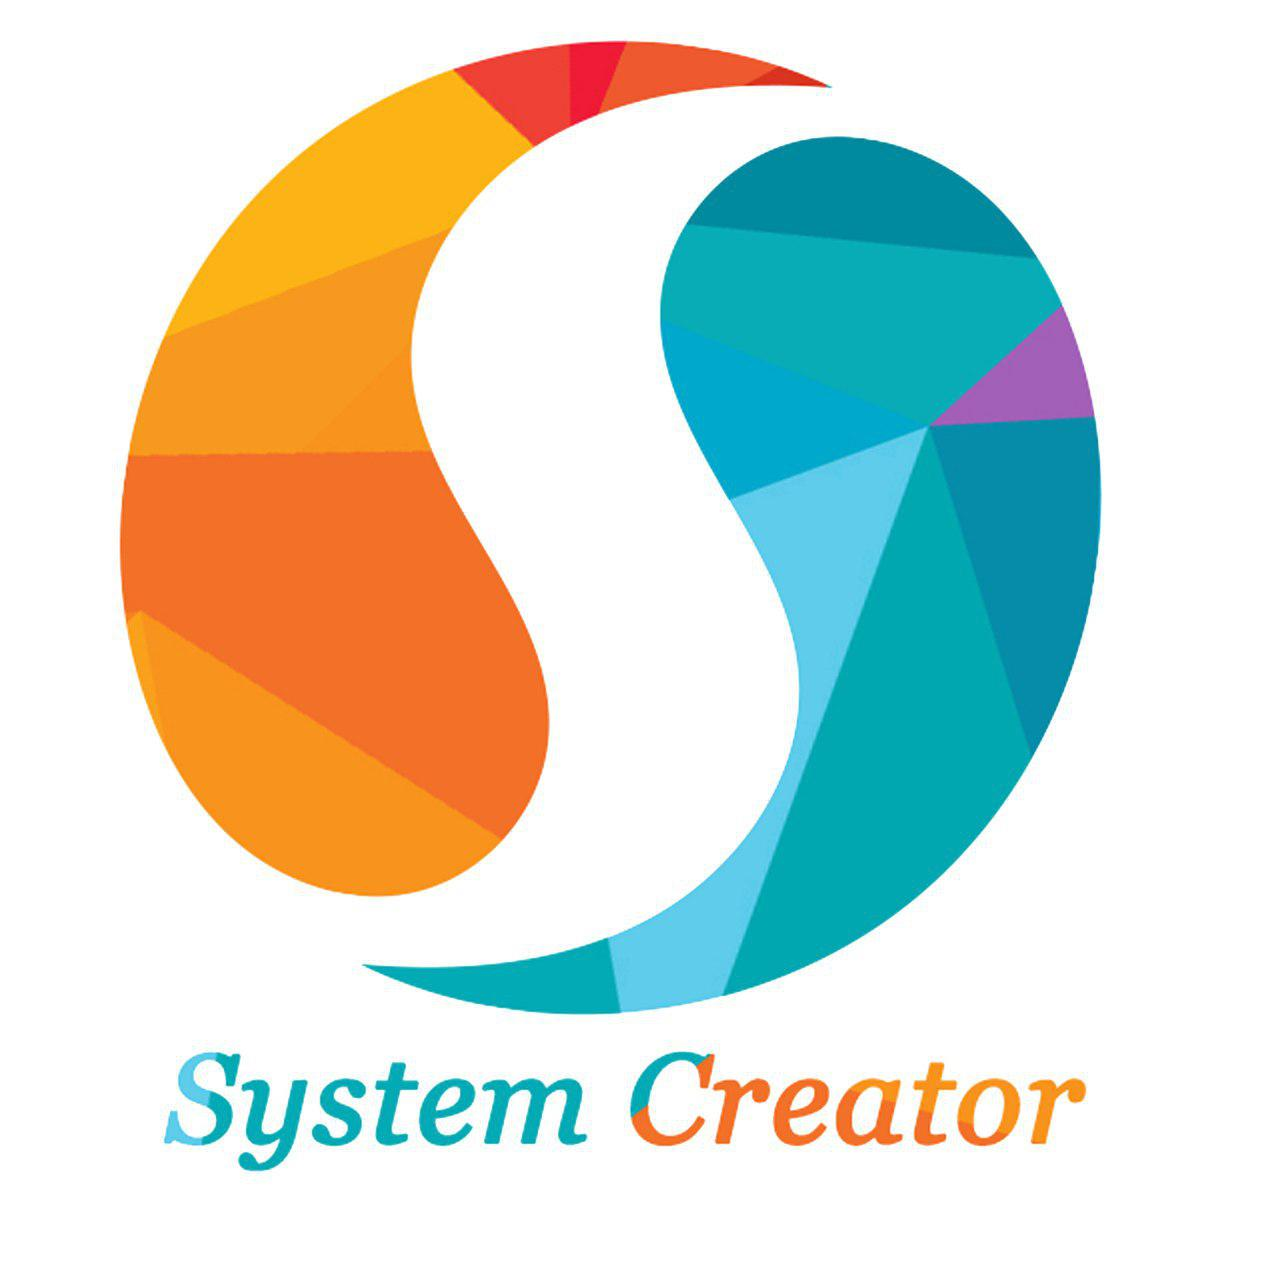 System Creator primary image